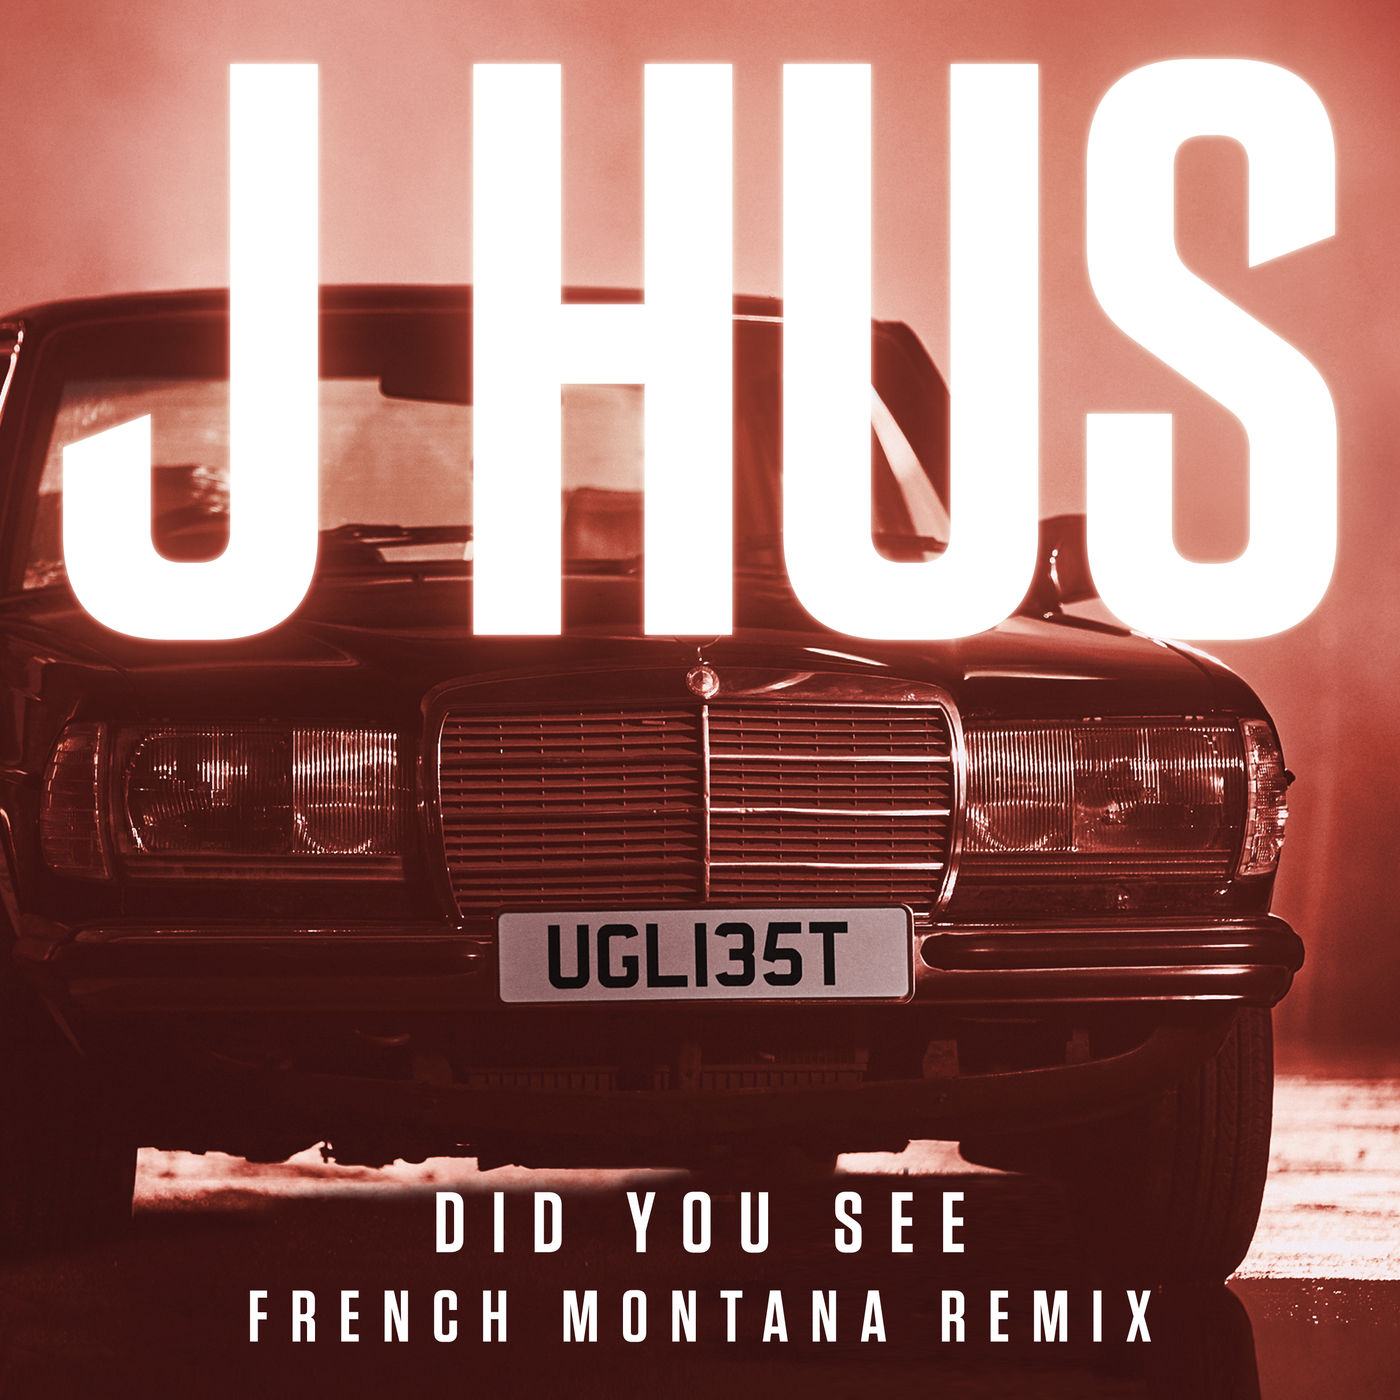 J Hus Remixes 'Did You See' with French Montana